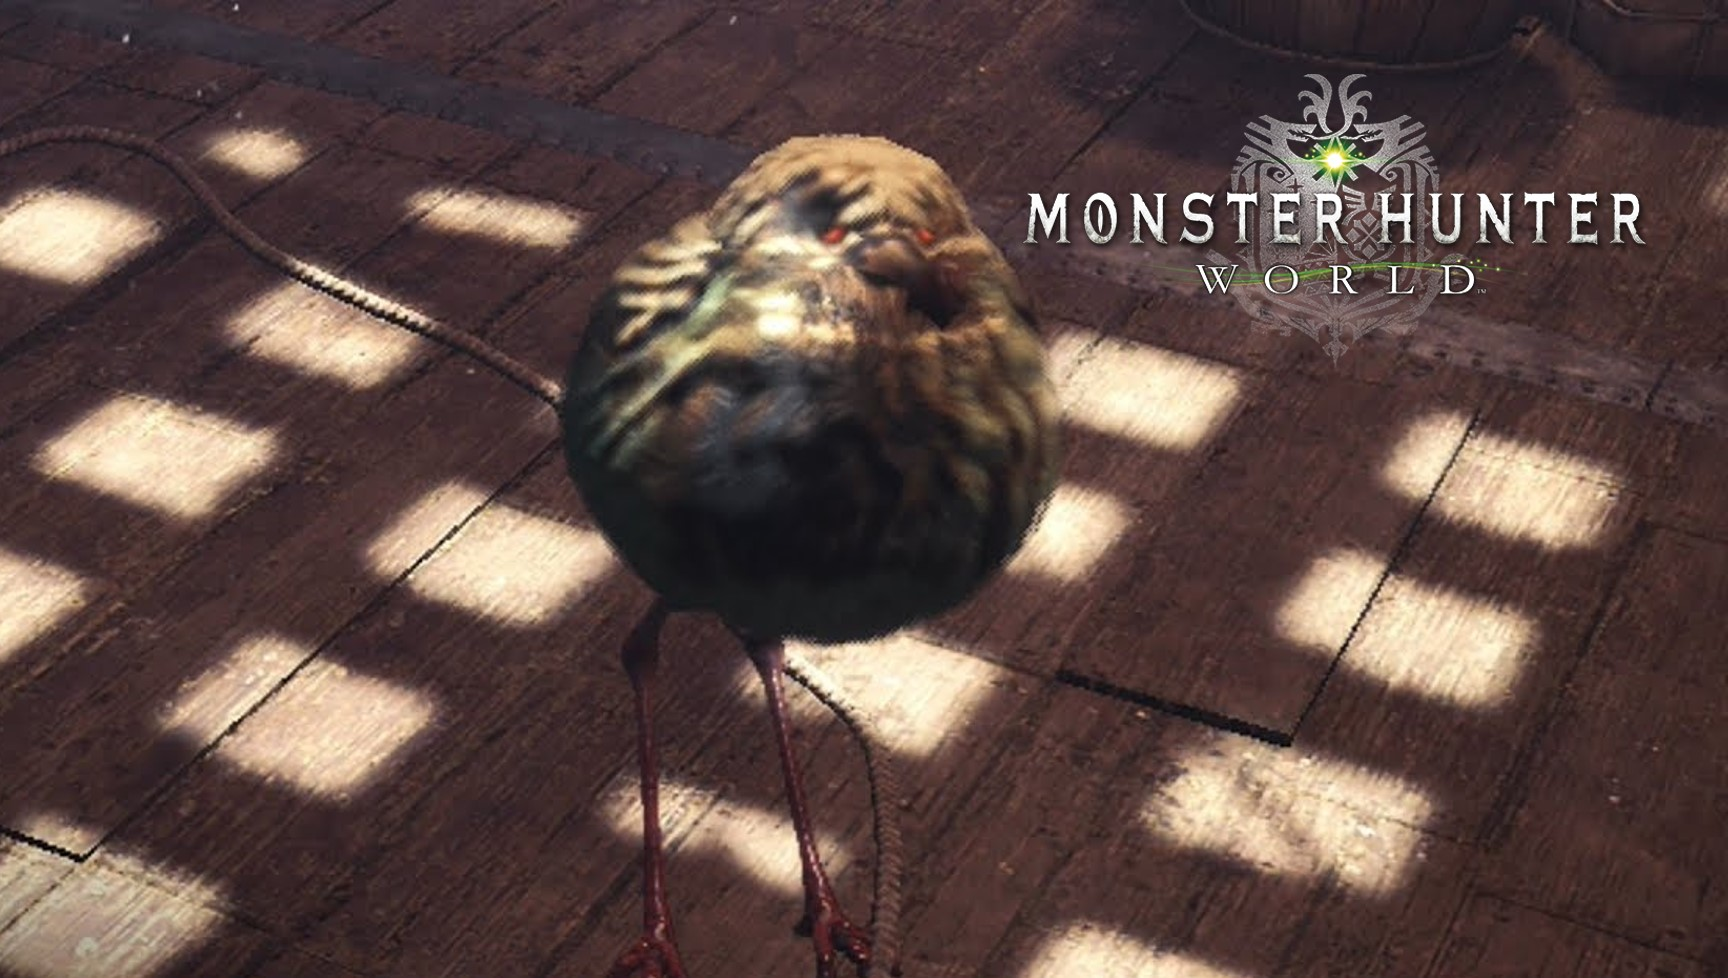 Borsten für alle – Fangt das seltene Kraushuhn in Monster Hunter World